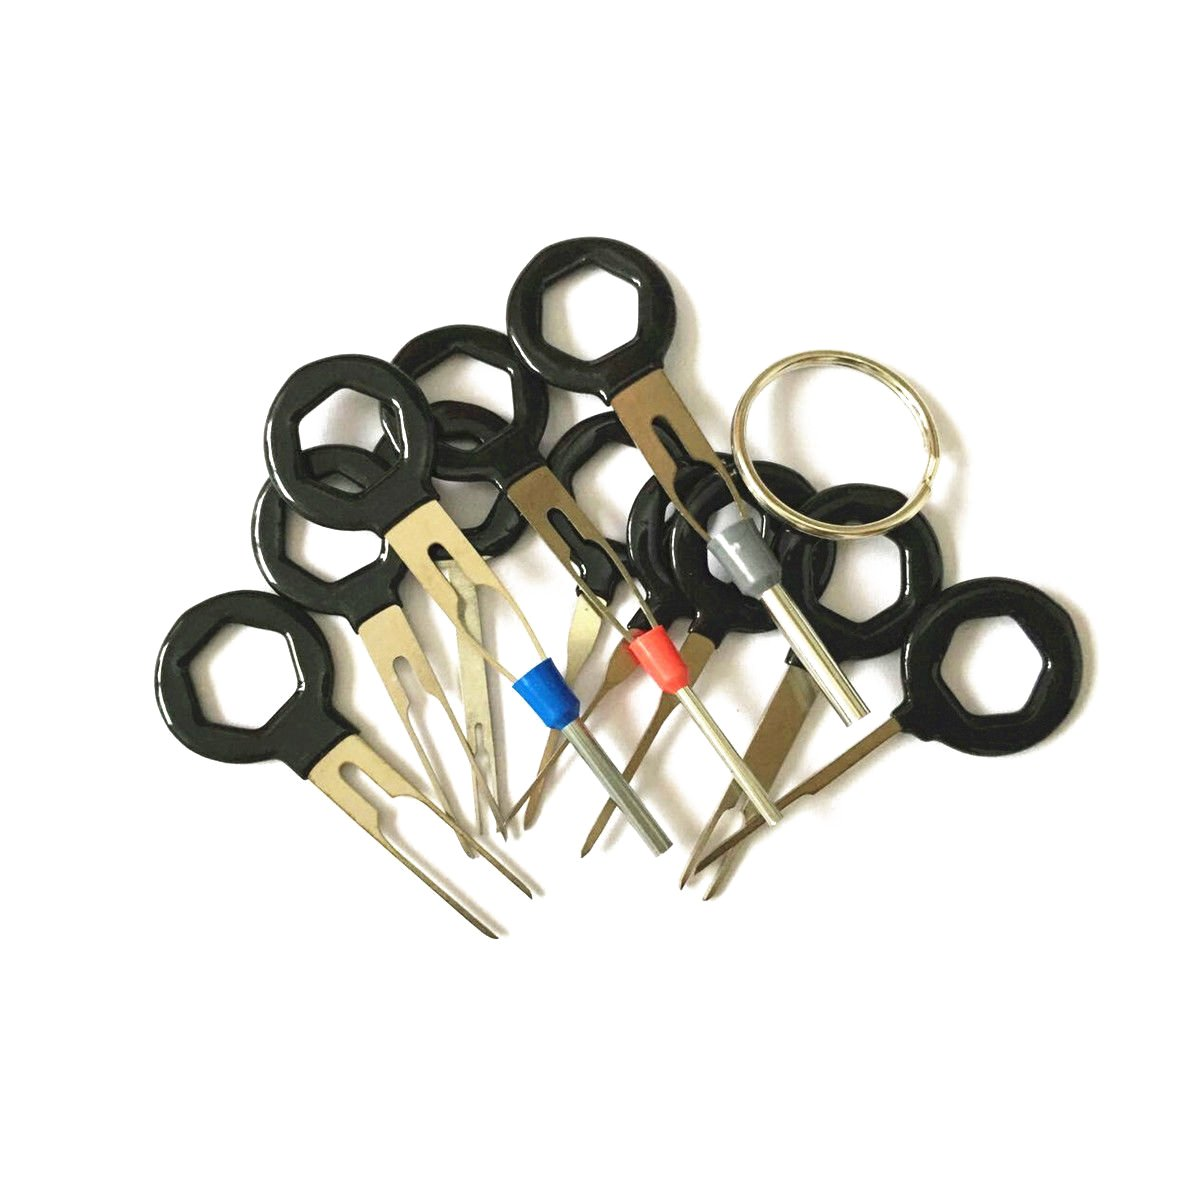 11pk Car Terminal Removal Key Tool Wiring Connector Honda Extractor Puller Release Pin Industrial Scientific